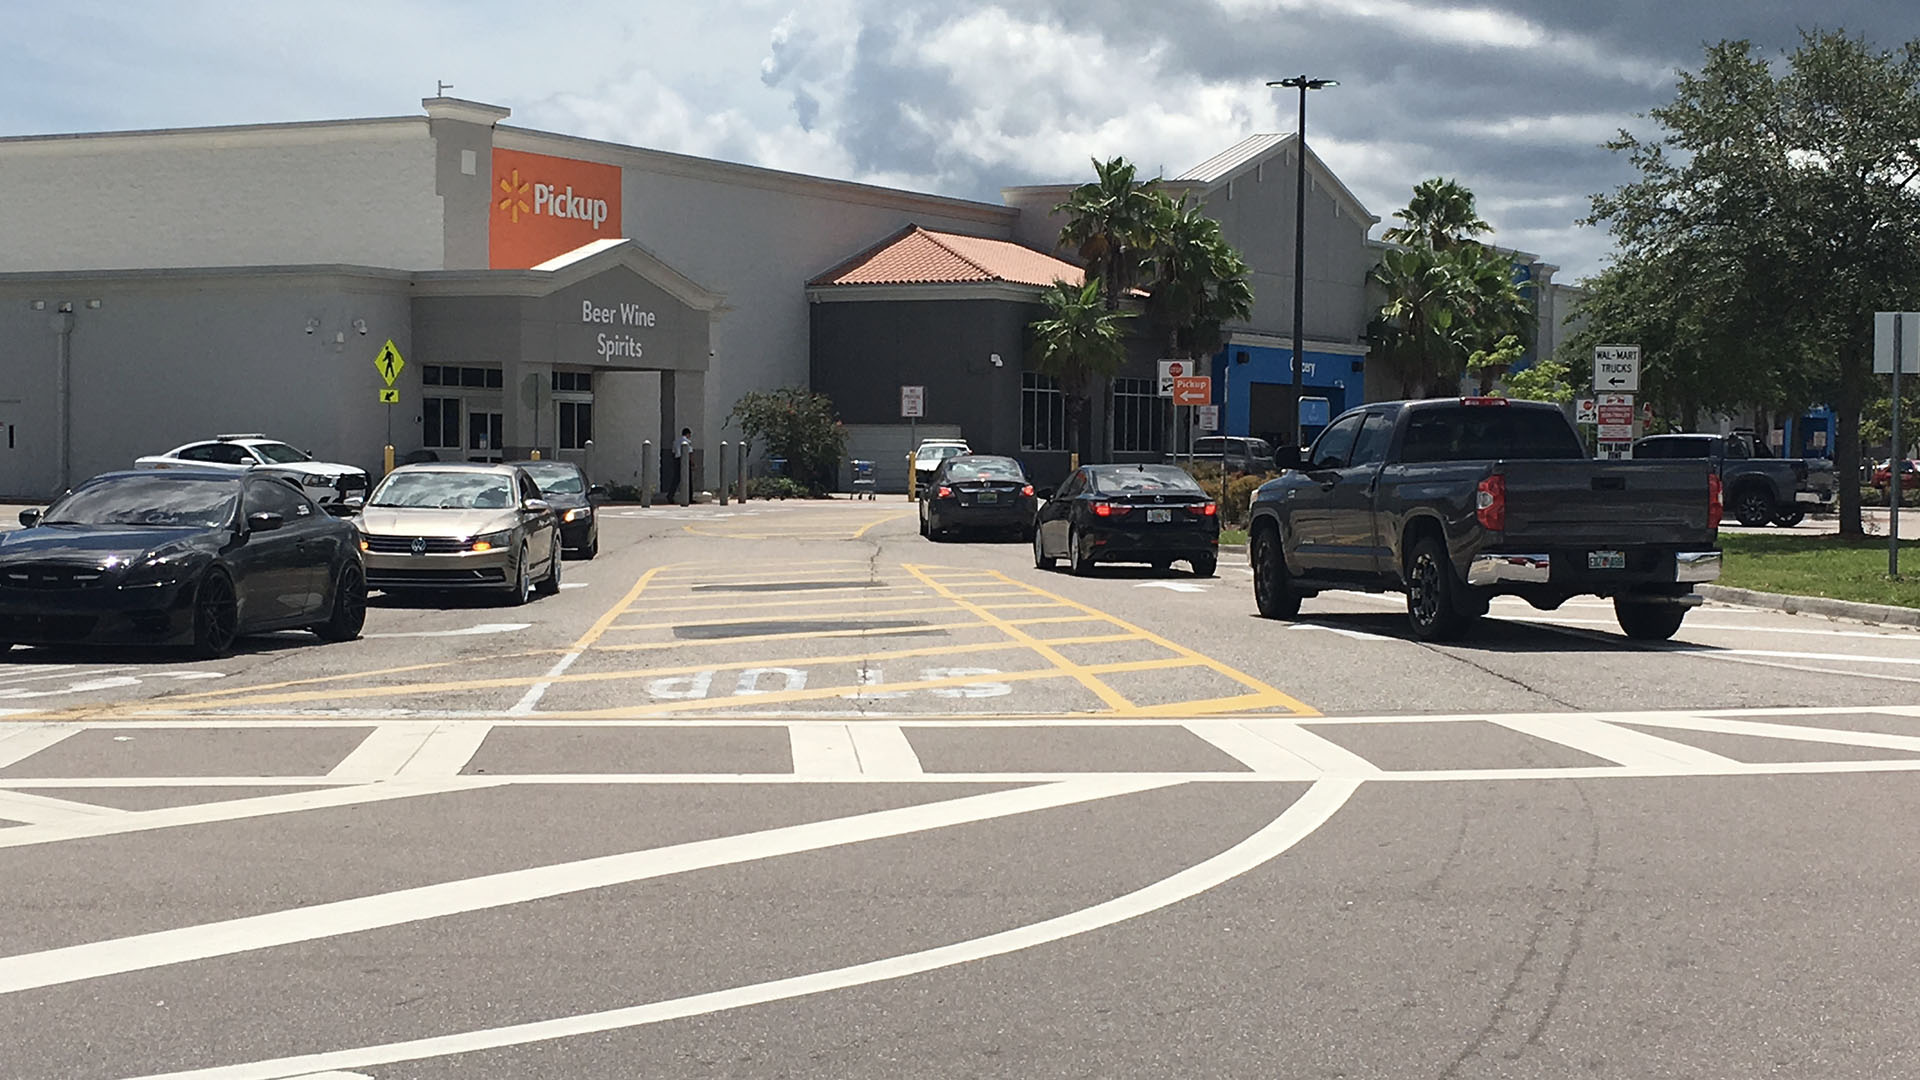 This is never funny': Sheriff's office says threat to Gibsonton